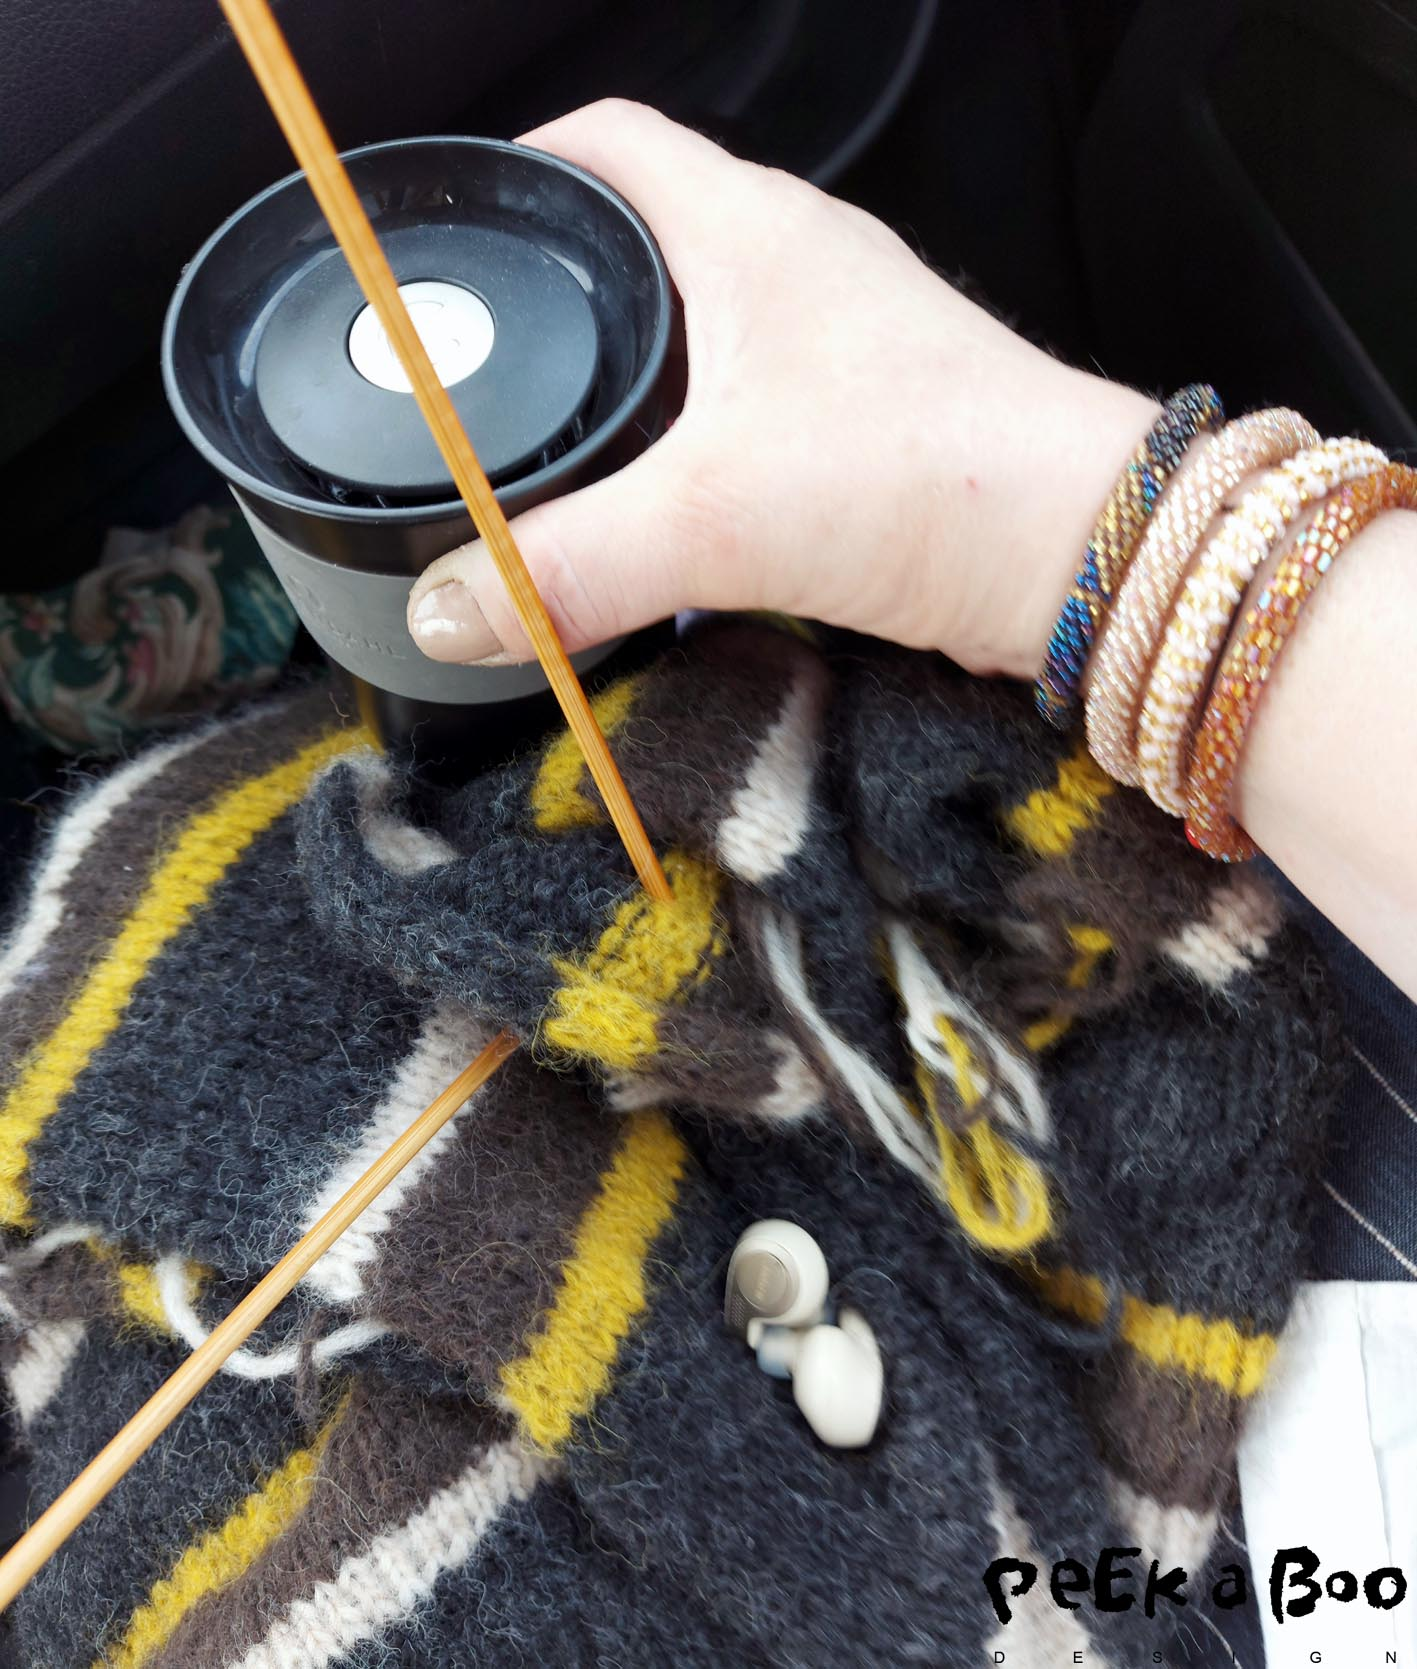 On the go with headset, tea and knitwear....what's not to like ???